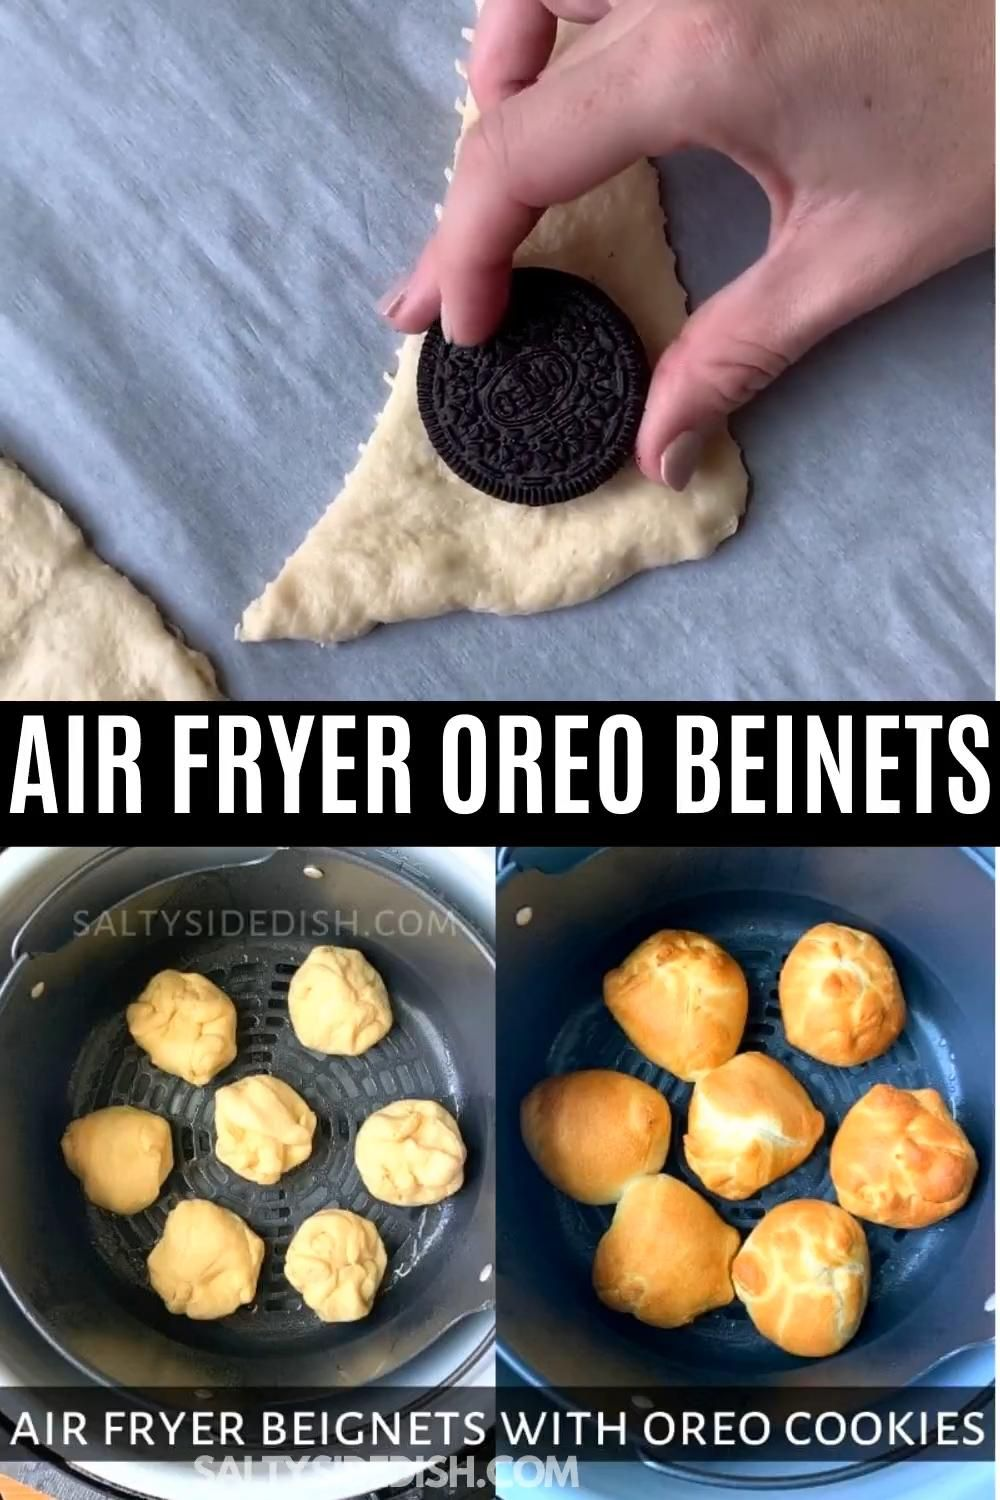 Air Fryer Beignets with Oreo Cookies - only 8 Minutes! -   18 air fryer recipes easy dessert ideas